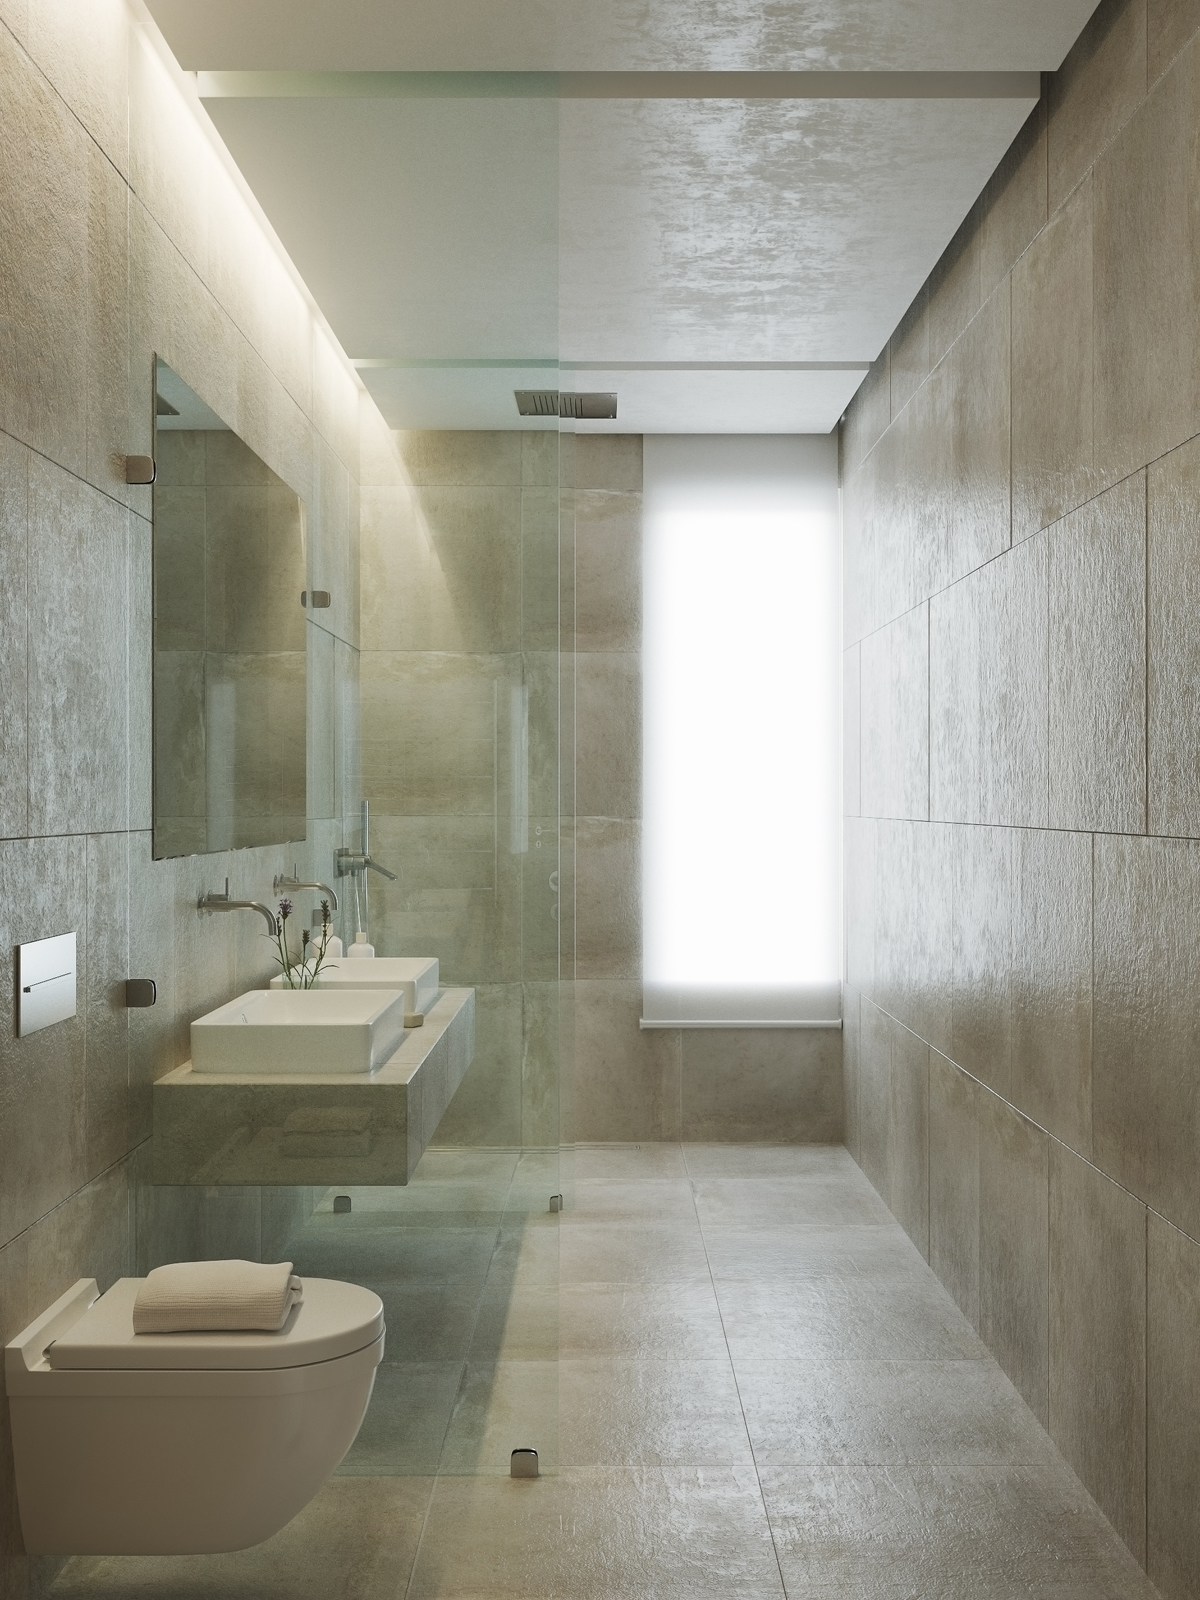 beige bathroom, modern bathroom design, beige tile, glass partition bathroom, neutral colors interior